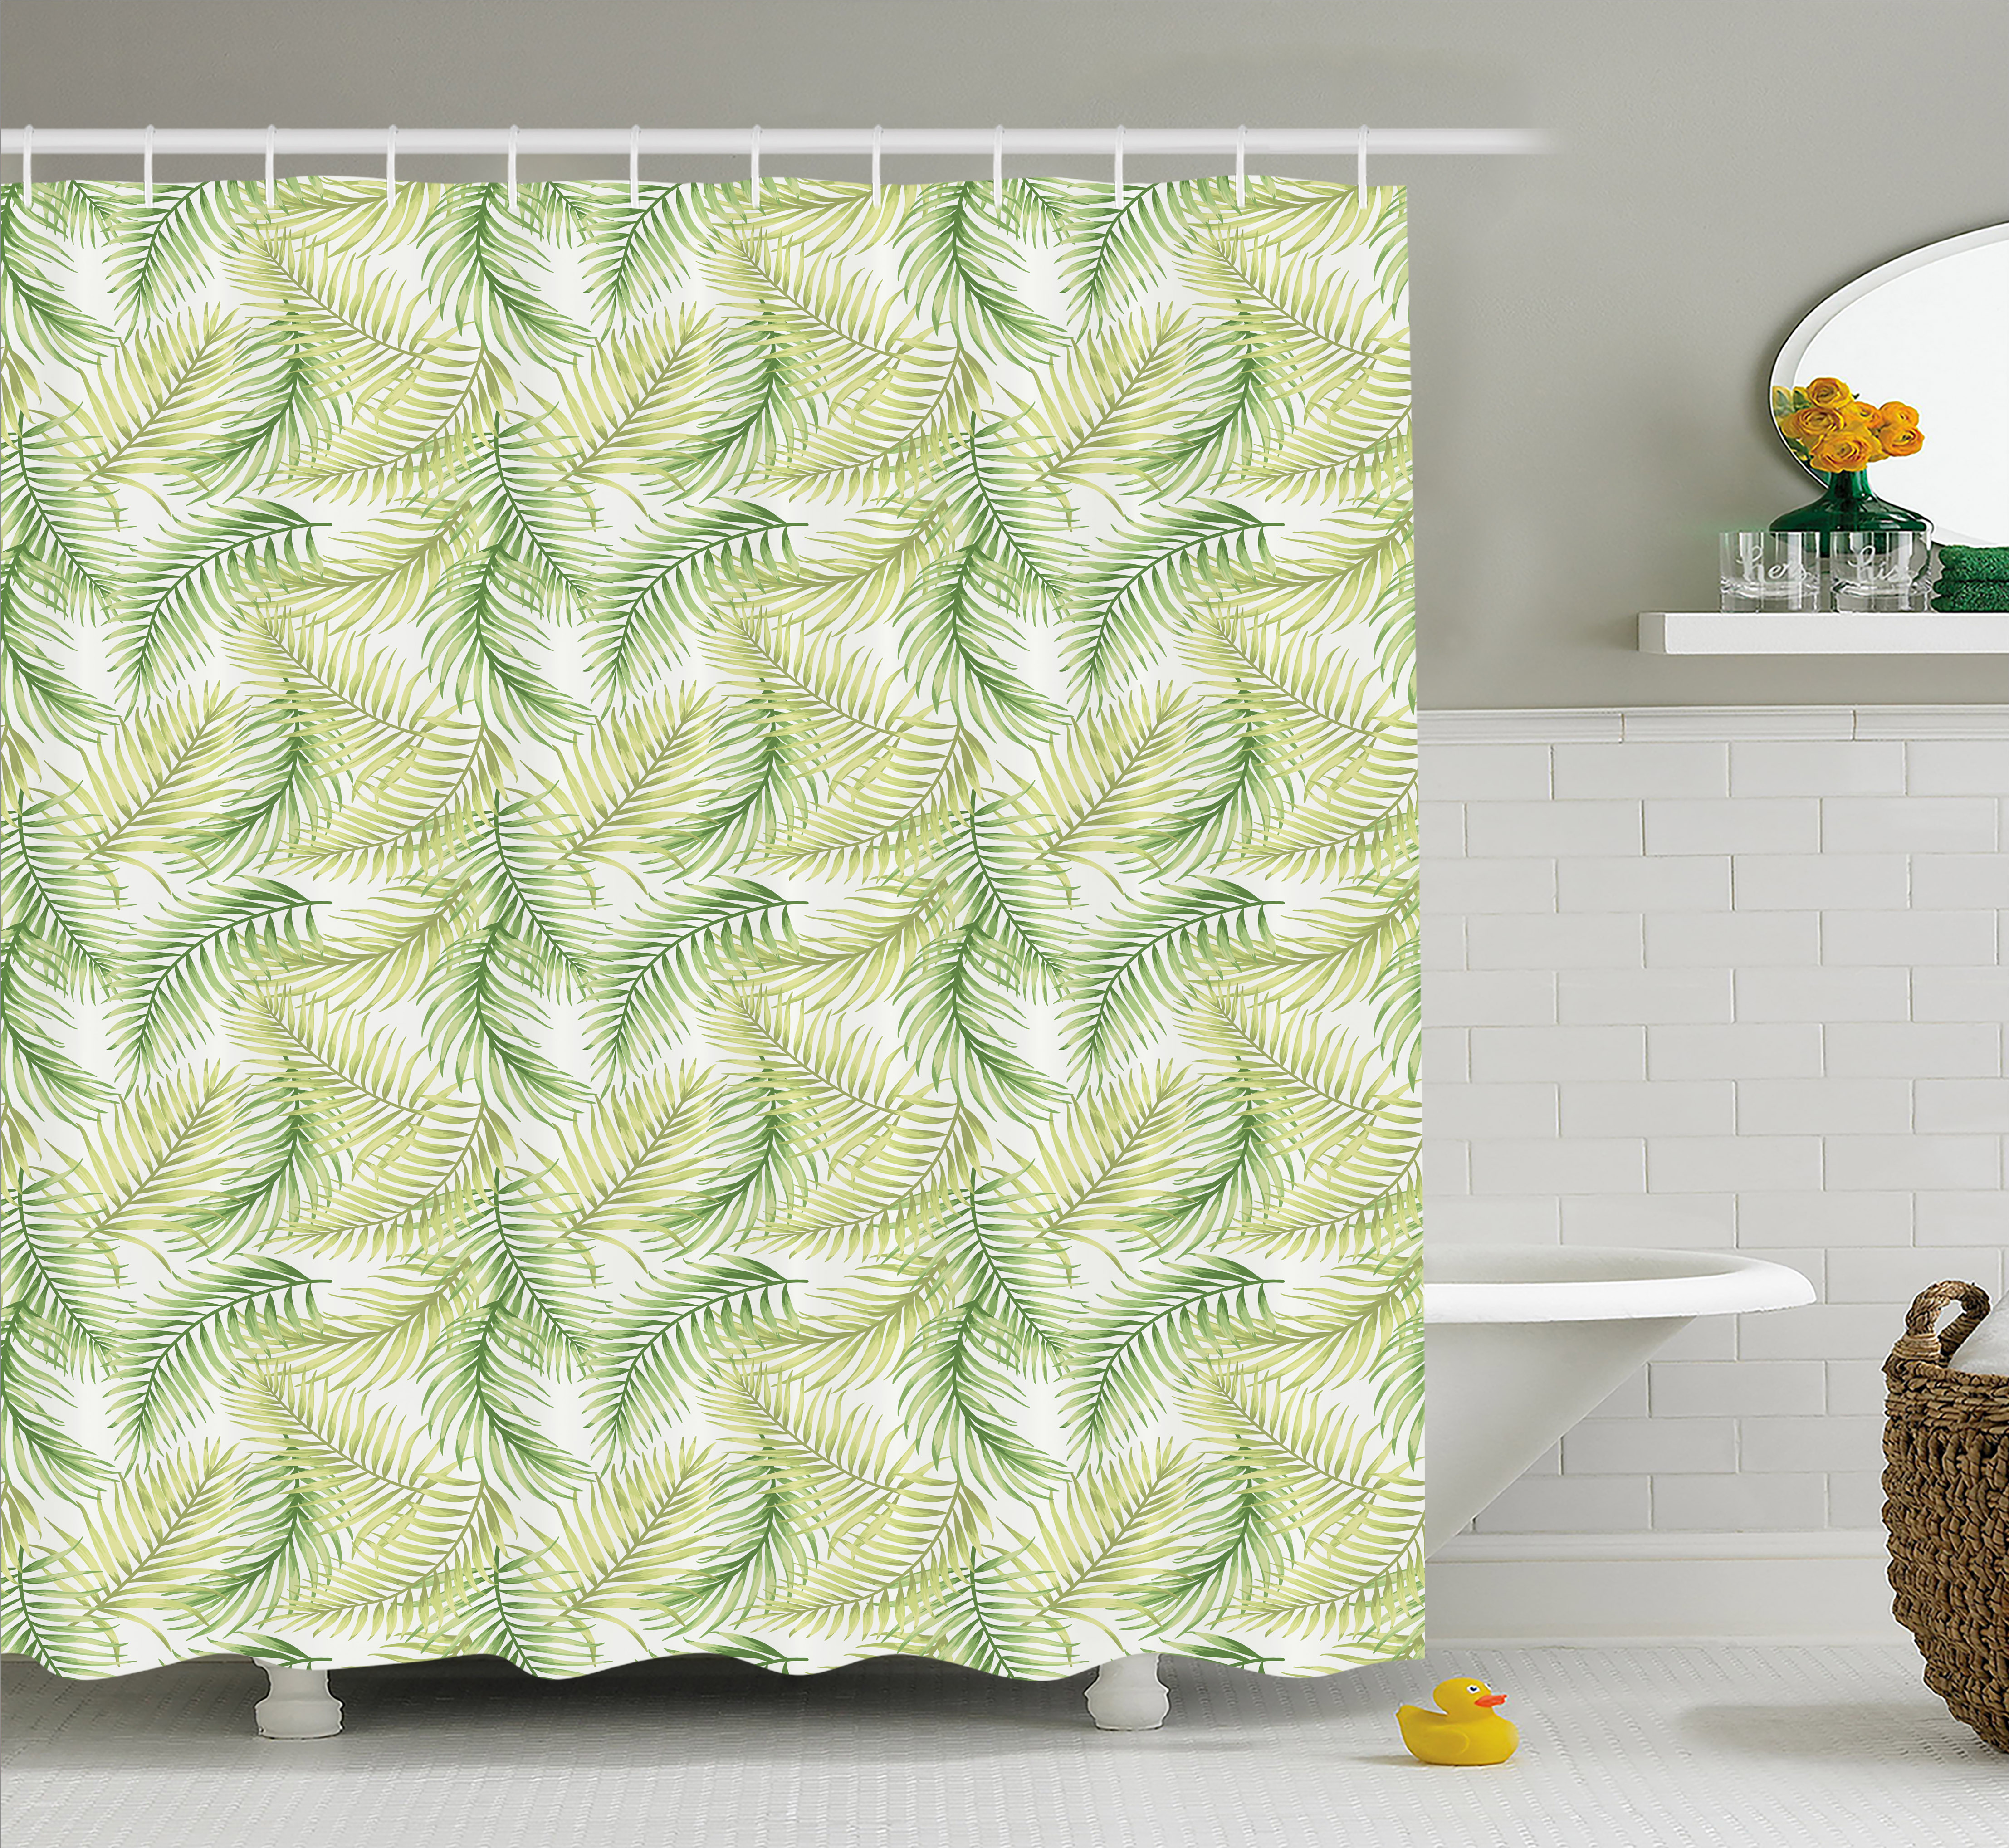 Palm Leaf Shower Curtain Green Leaves Of Coconut Palms Watercolor Style Fresh Nature Pattern Fabric Bathroom Set With Hooks 69W X 84L Inches Extra Long